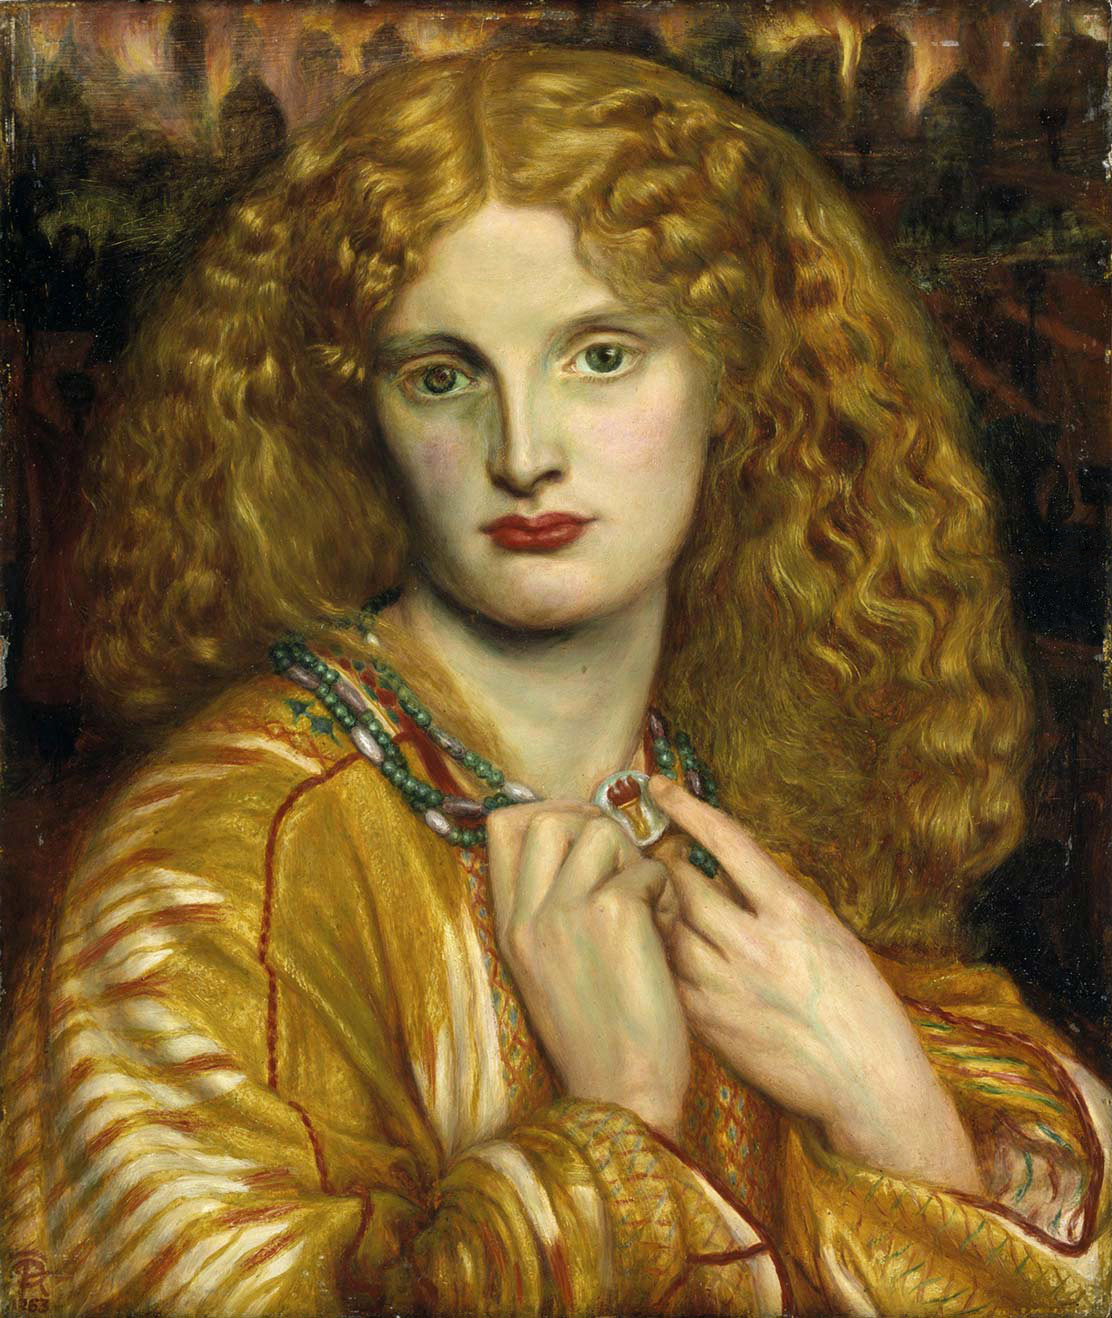 Helen of Troy by Dante Gabriel Rossetti - 1863